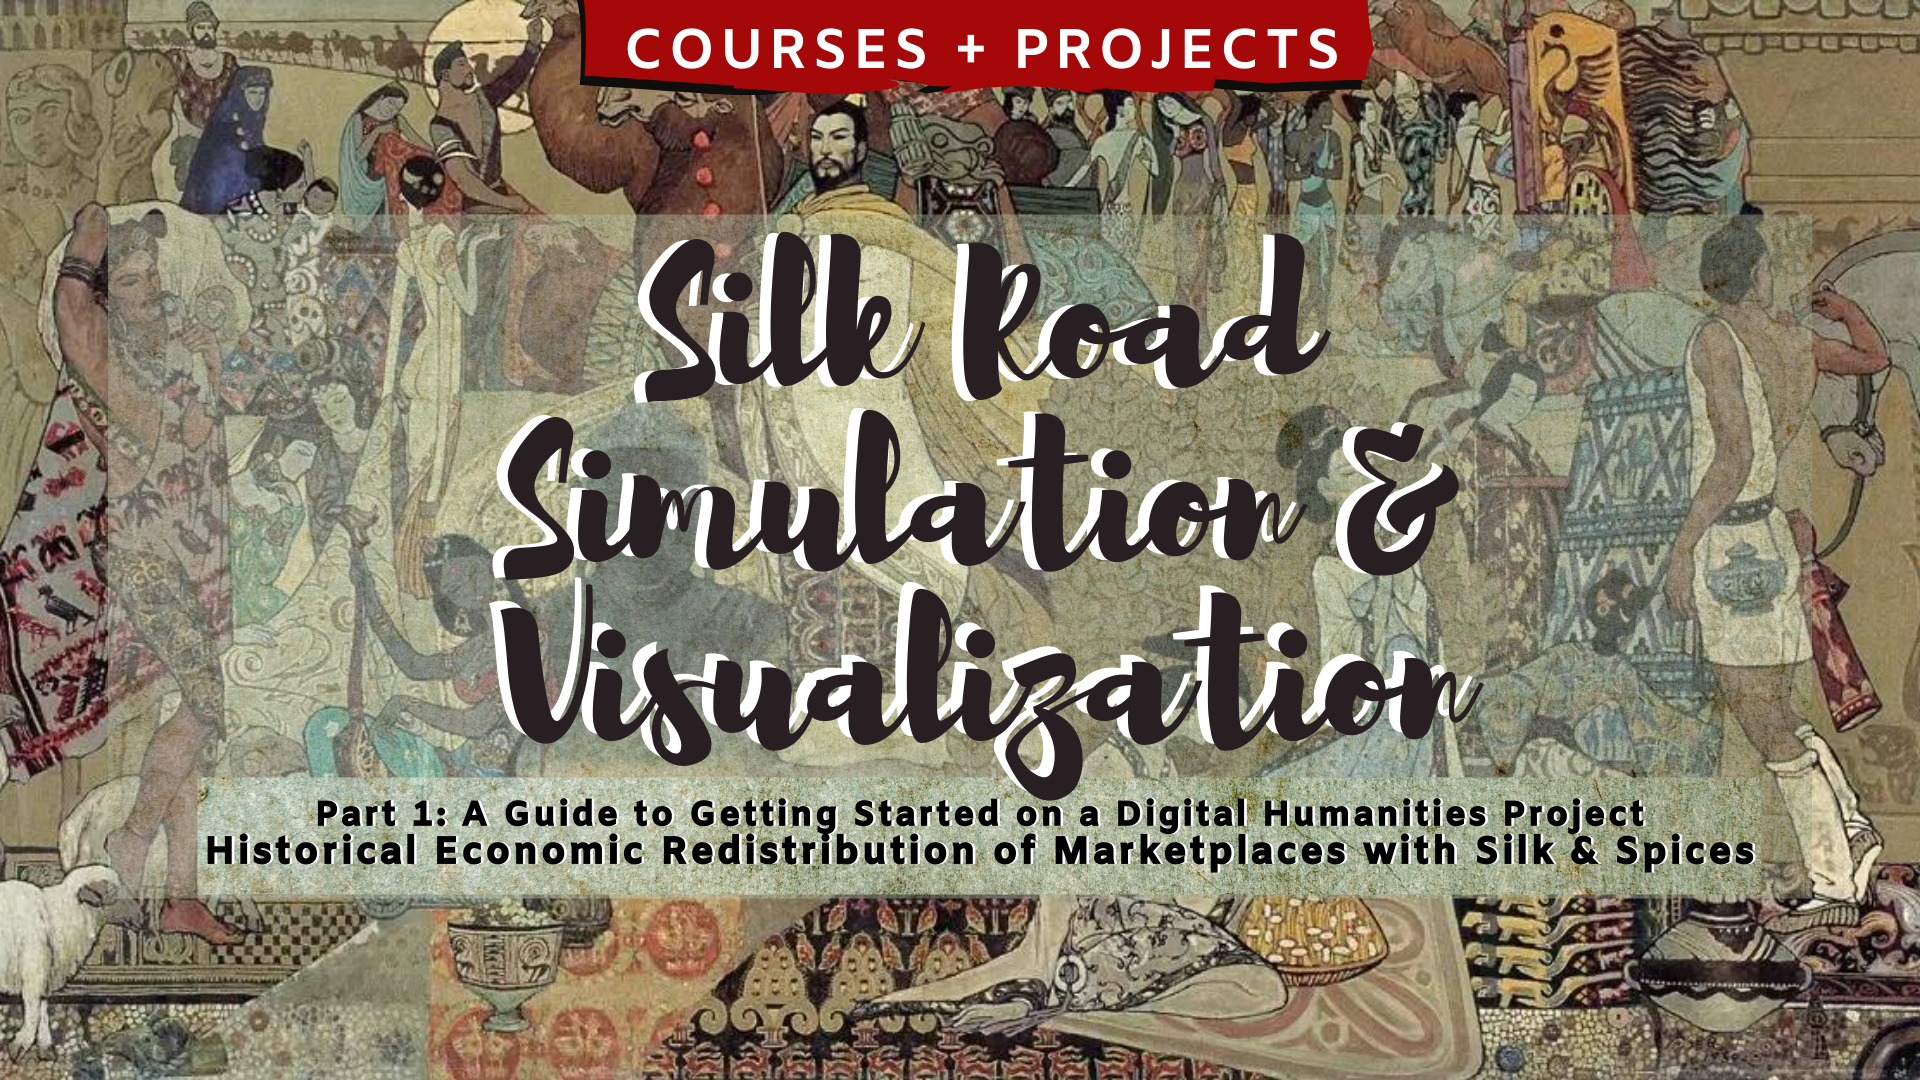 Silk Road Simulation and Visualization 2 Part 2: A Guide to Getting Started on a Digital Humanities Project Historical Economic Redistribution of Marketplaces with Silk & Spices with a background of Silk Road traveler characters